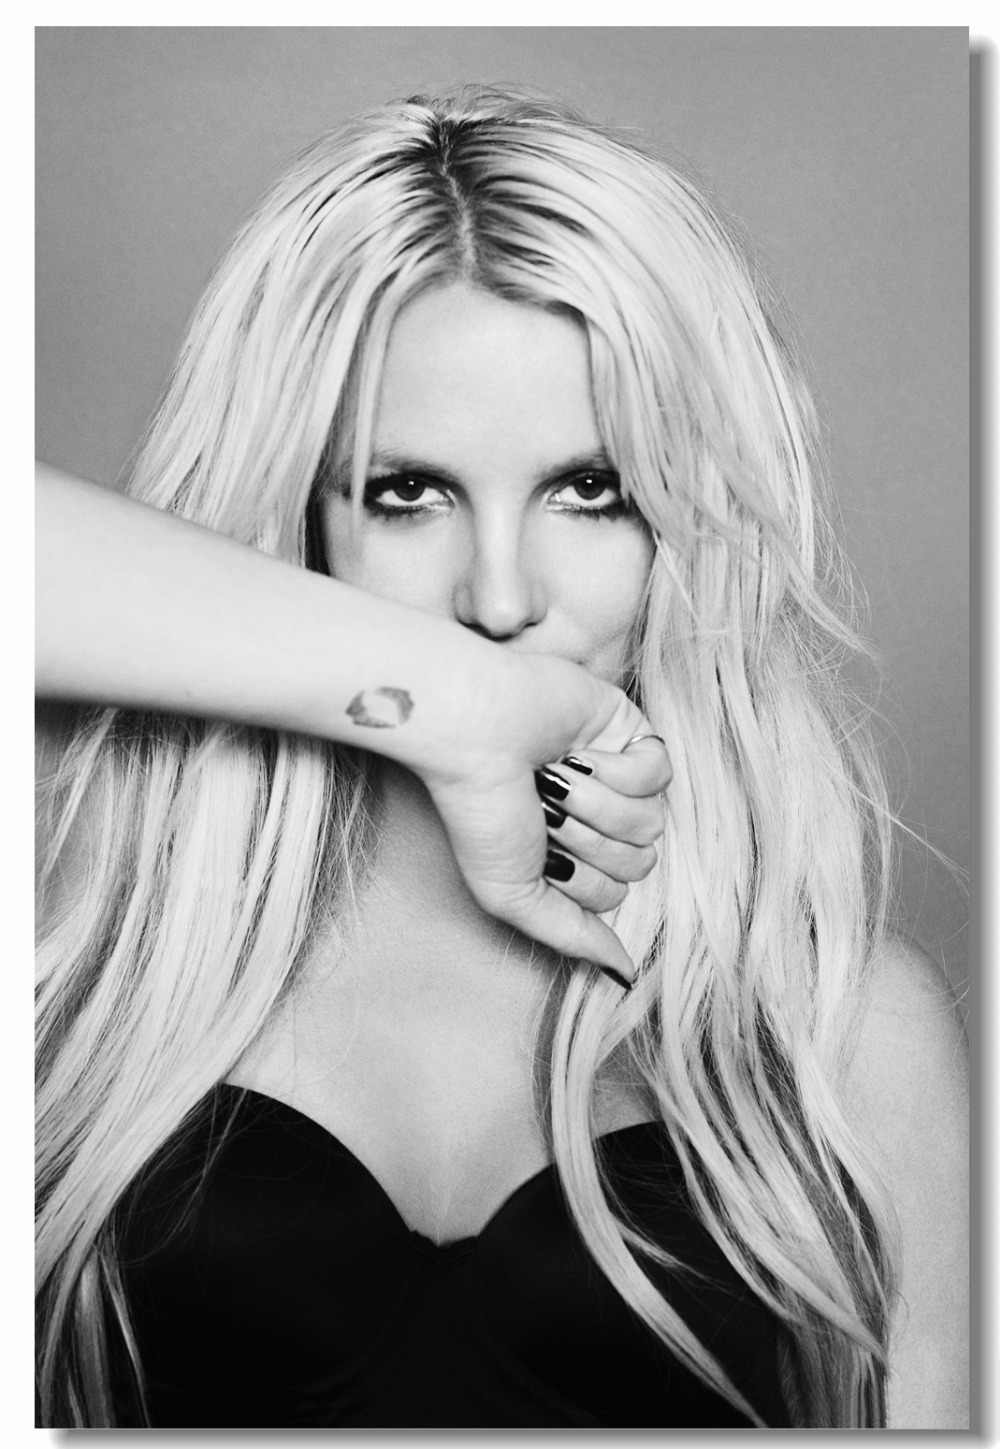 Custom Printing Canvas Wall Mural Britney Spears Poster Britney Spears Wall Sticker Black And White Wallpaper Room Decor 0904 Aliexpress